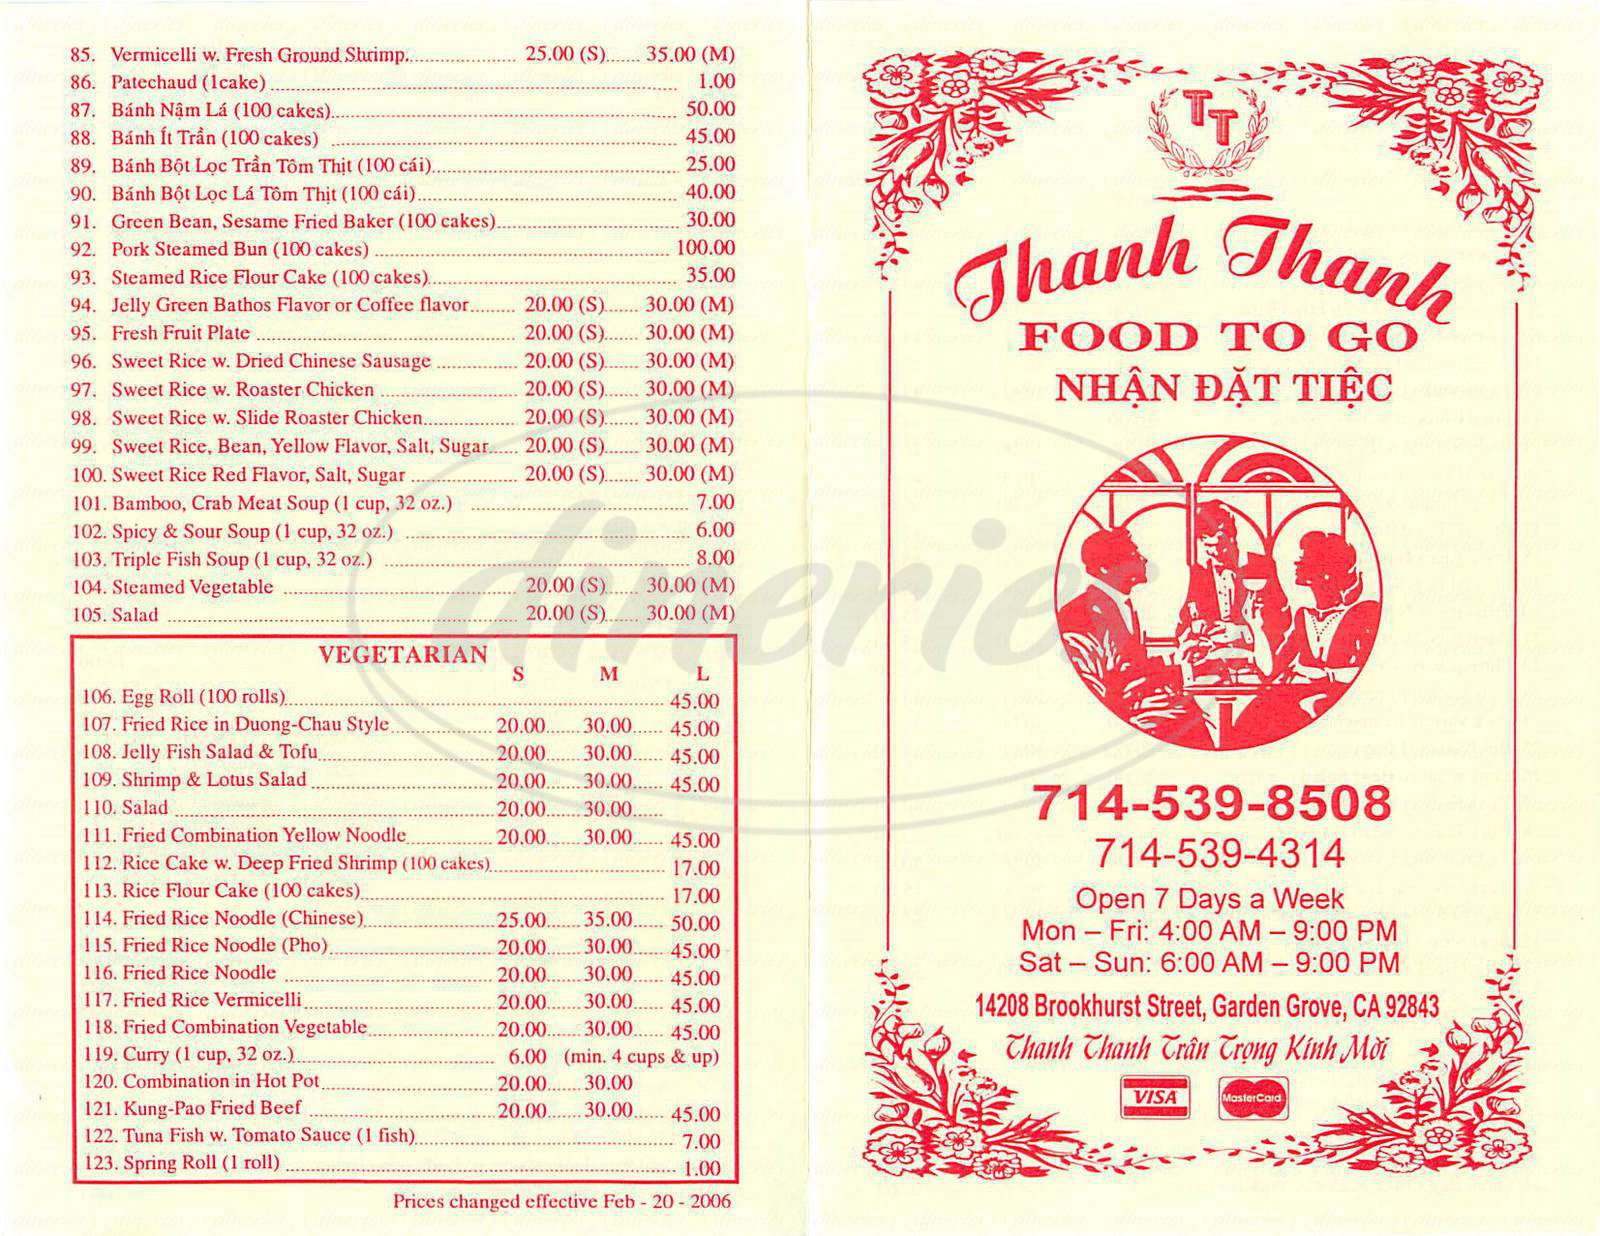 menu for Thanh Thanh Food to Go